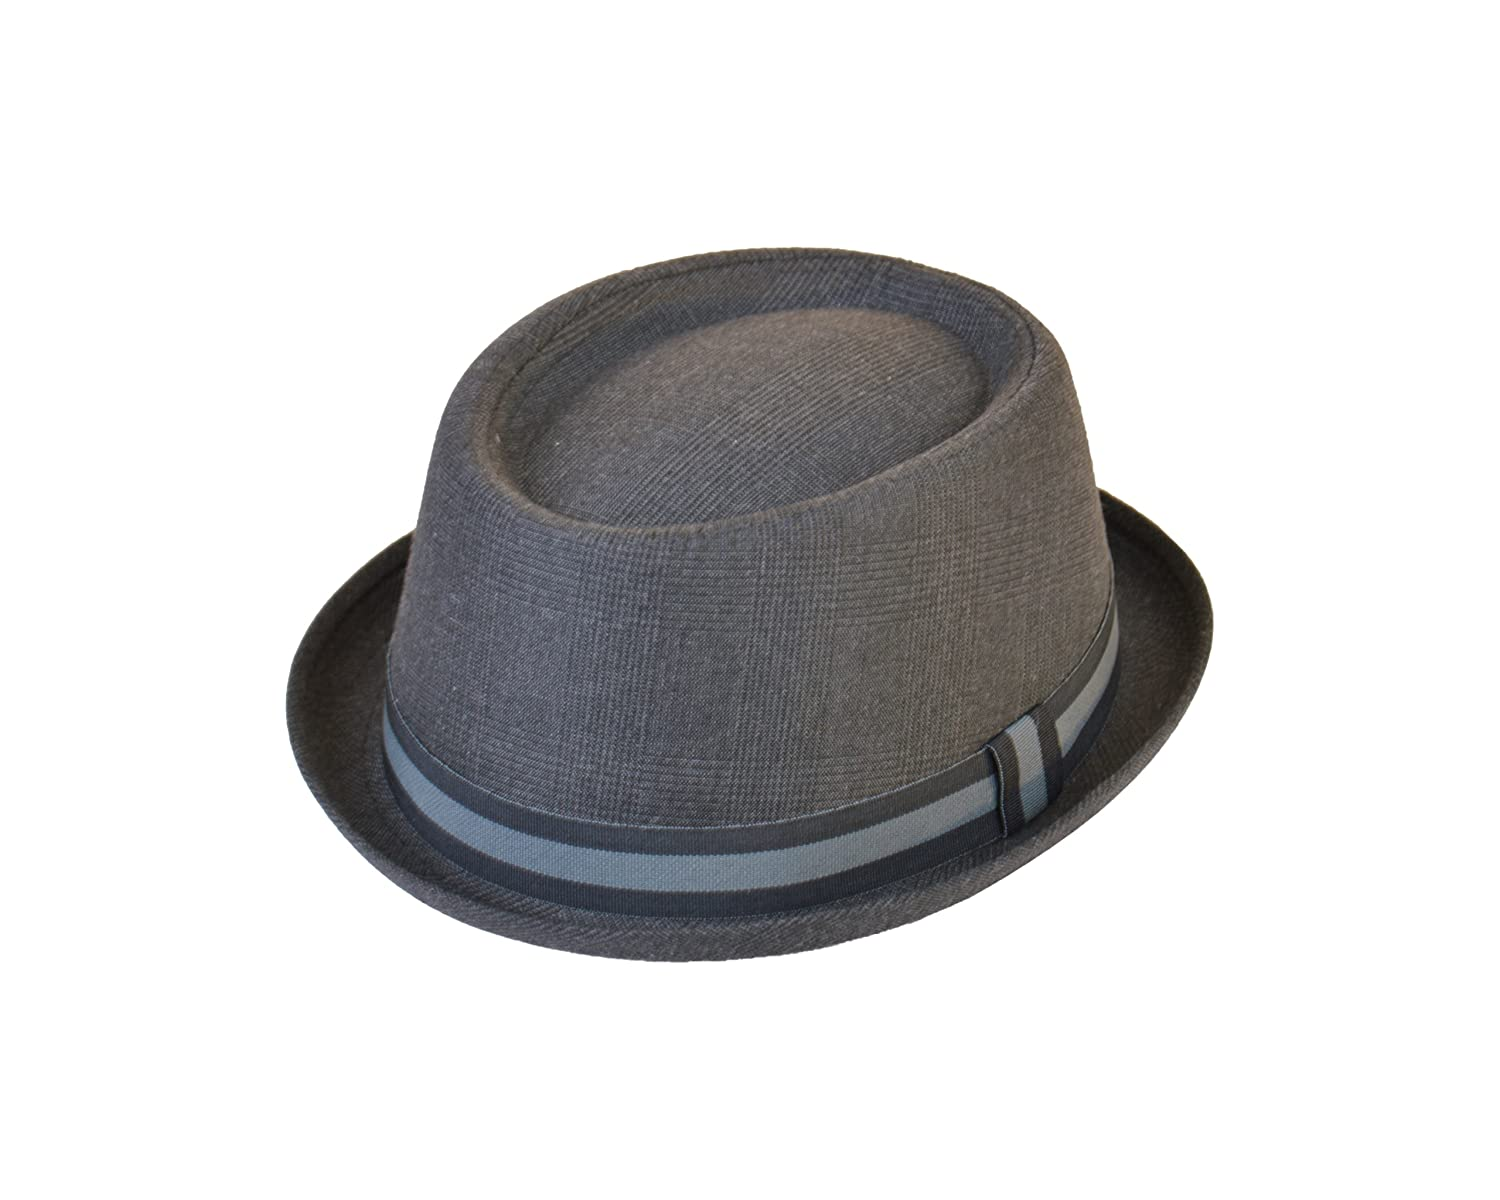 Adults Unisex Classic Tweed Pork Pie Hat in Grey, Medium/Large